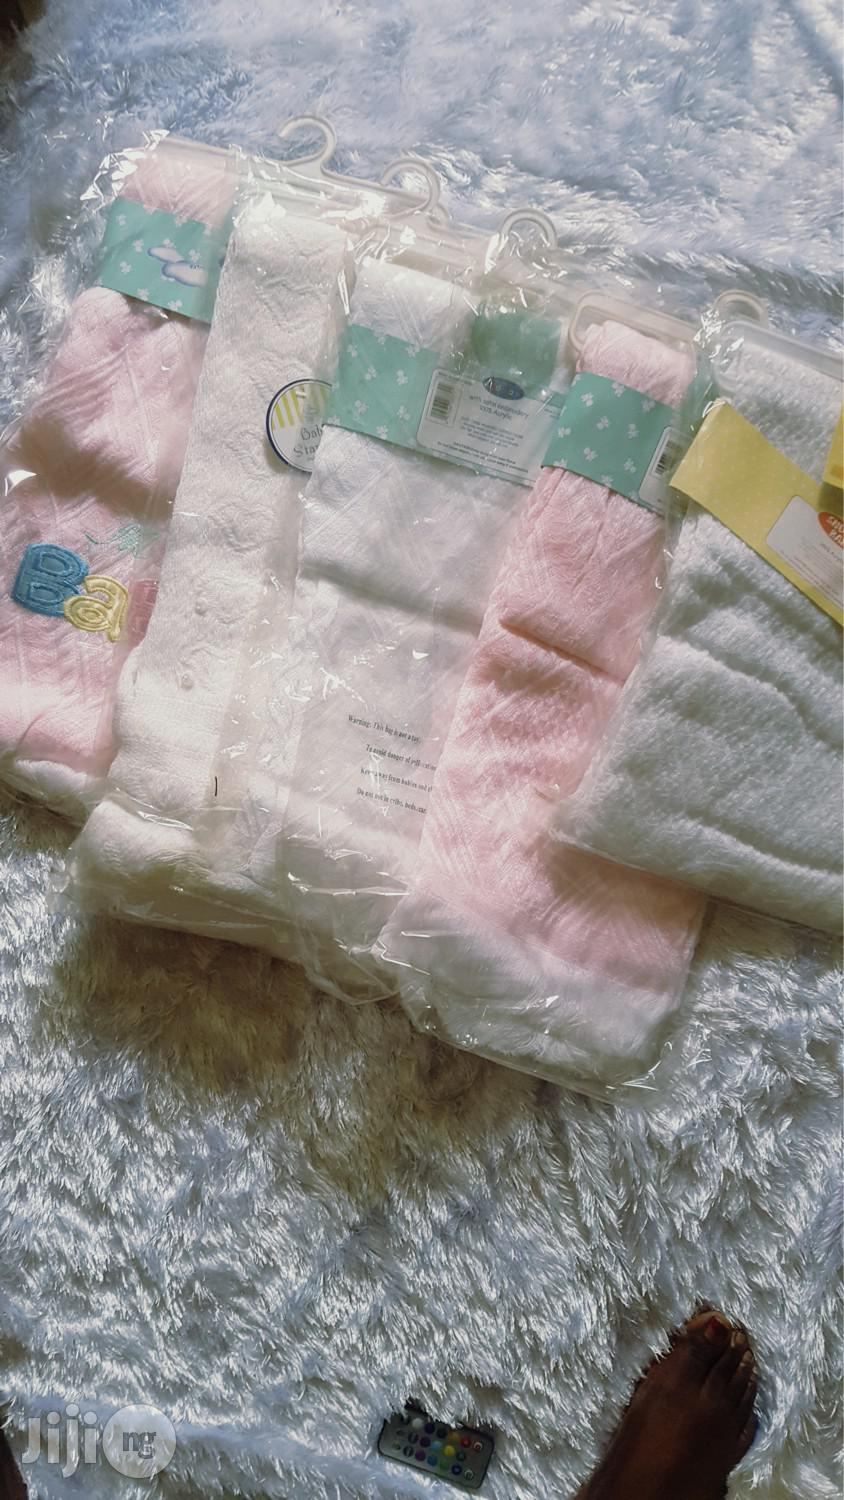 Baby Shawl | Baby & Child Care for sale in Alimosho, Lagos State, Nigeria